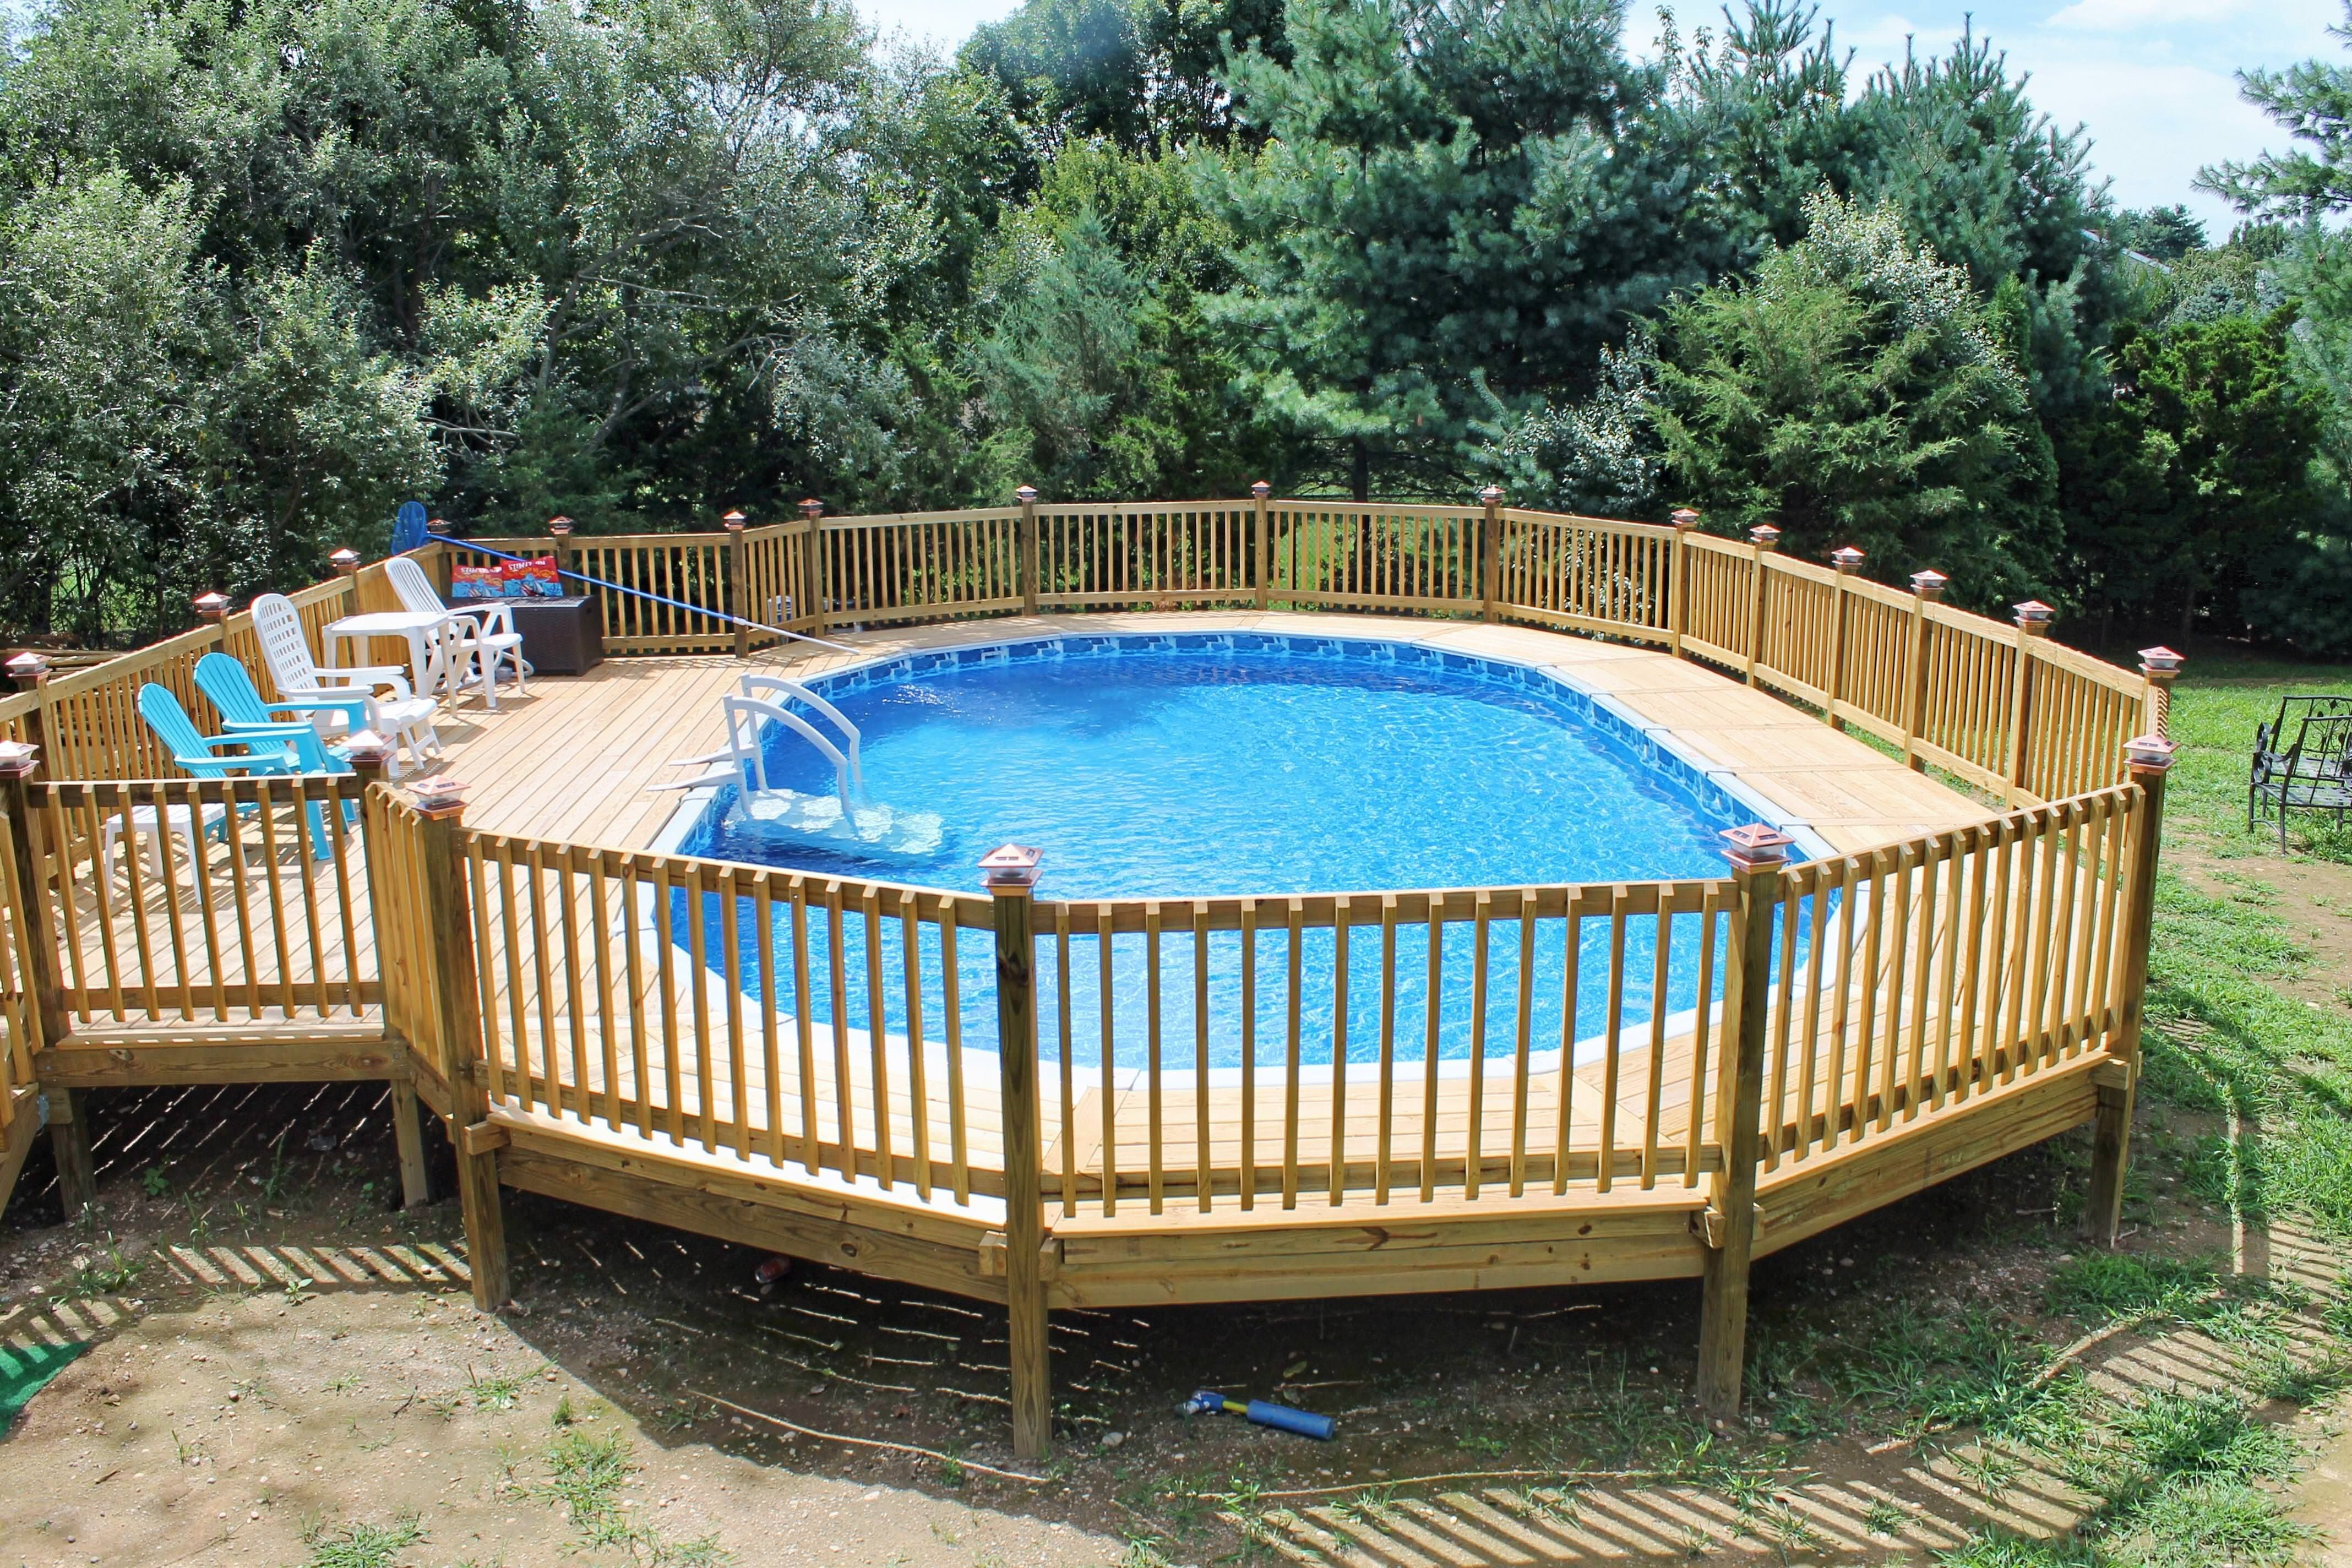 above ground pool decks idea for your backyard decor beautiful backyard with exterior designs using awesome above ground pool deck design ideas - Above Ground Composite Pool Deck